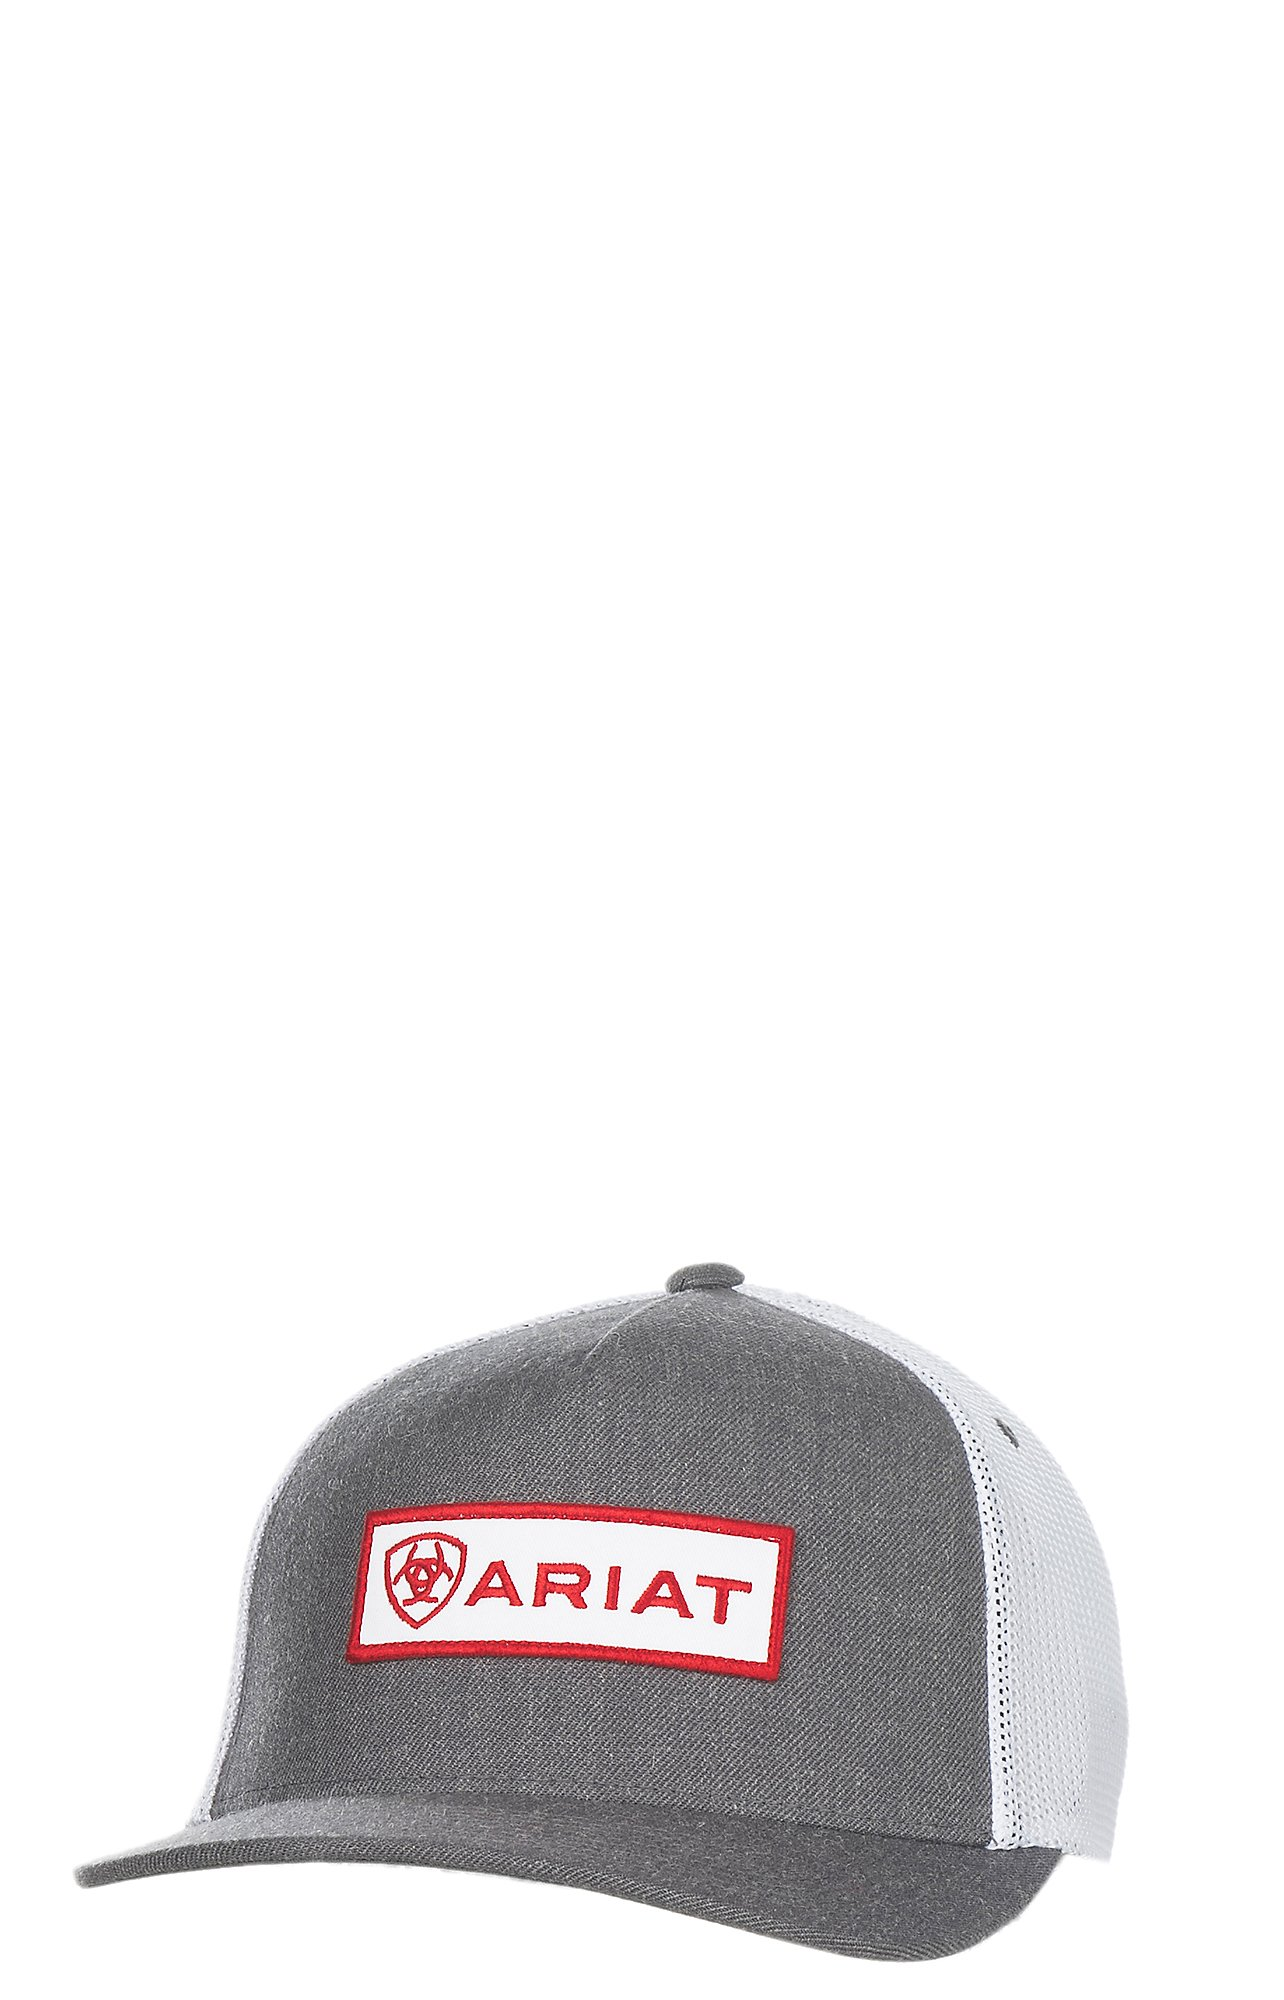 Ariat Grey with Red Patch Logo and Mesh Back Snap Back Cap 8b509c67886d